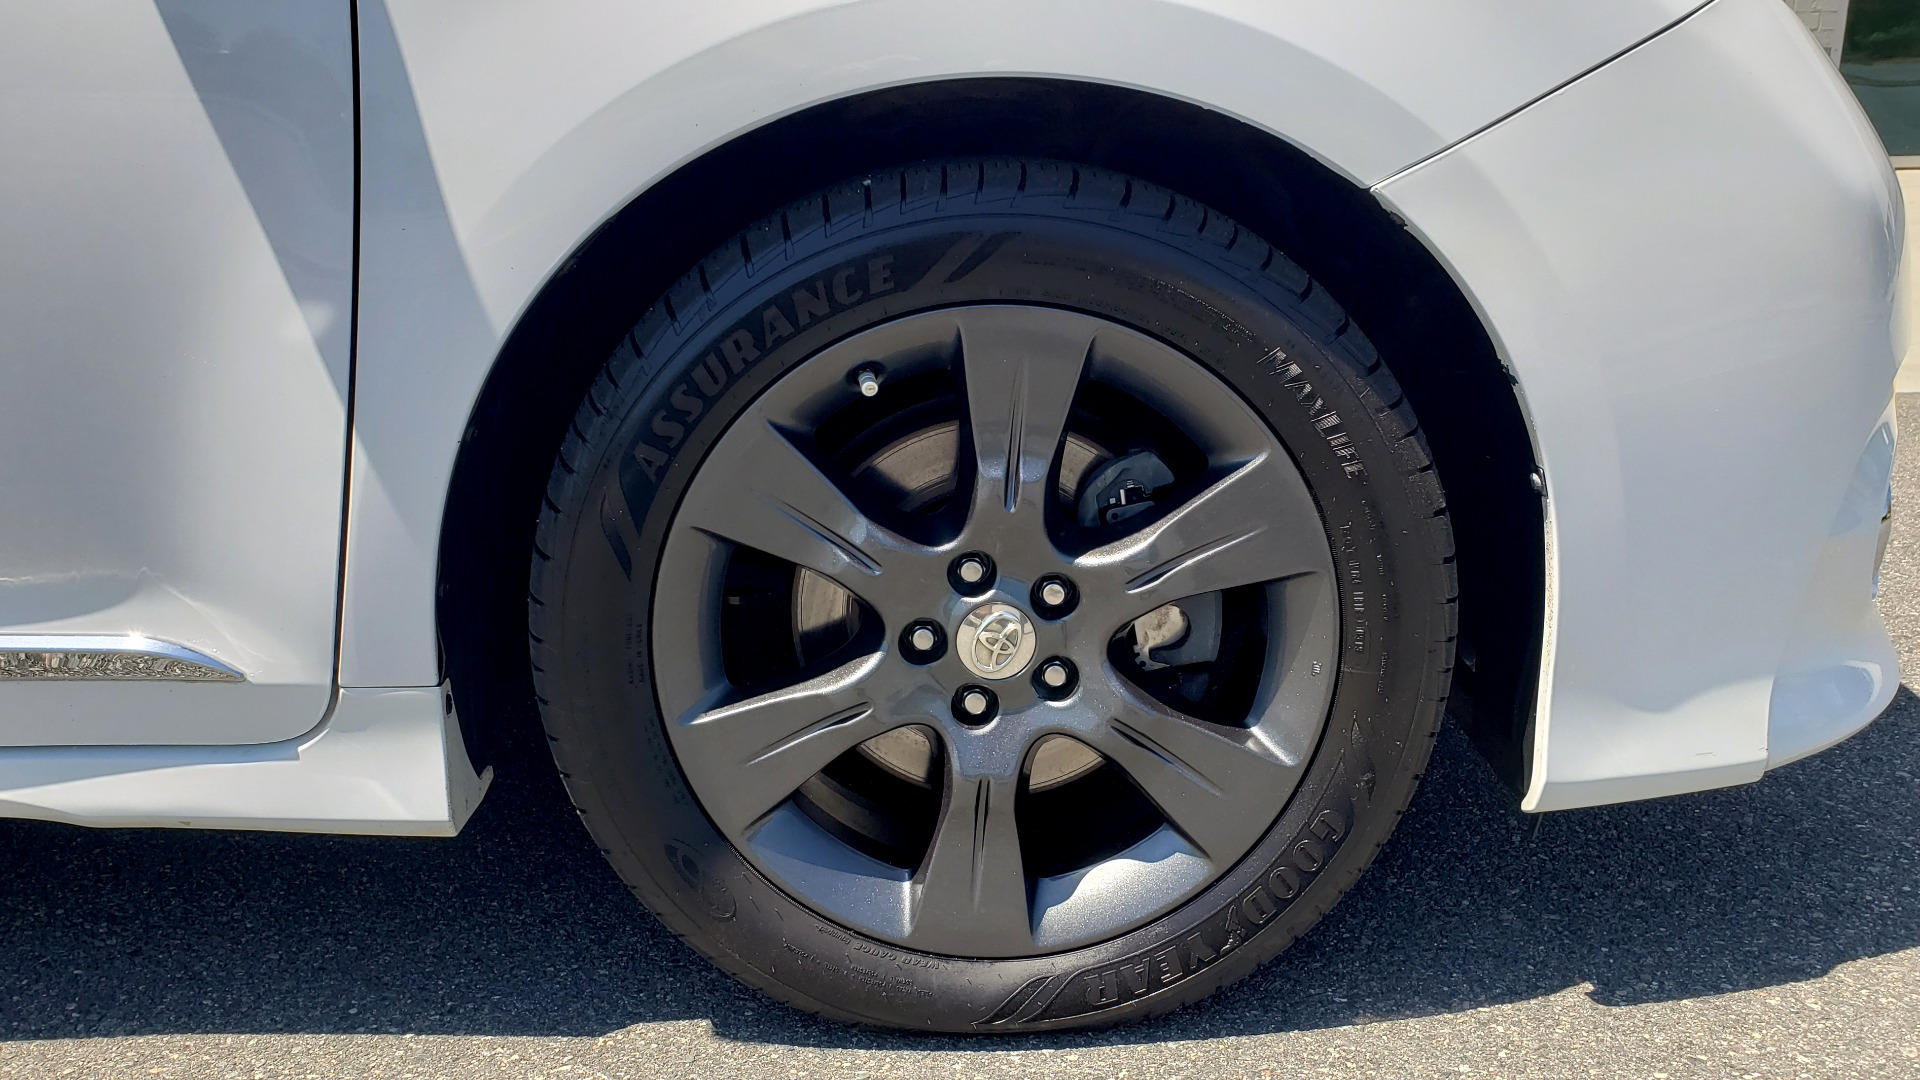 Used 2015 Toyota SIENNA SE 3.5L / FWD / 3-ROWS / 8-PASS / SUNROOF / DVD / REARVIEW for sale $21,995 at Formula Imports in Charlotte NC 28227 77